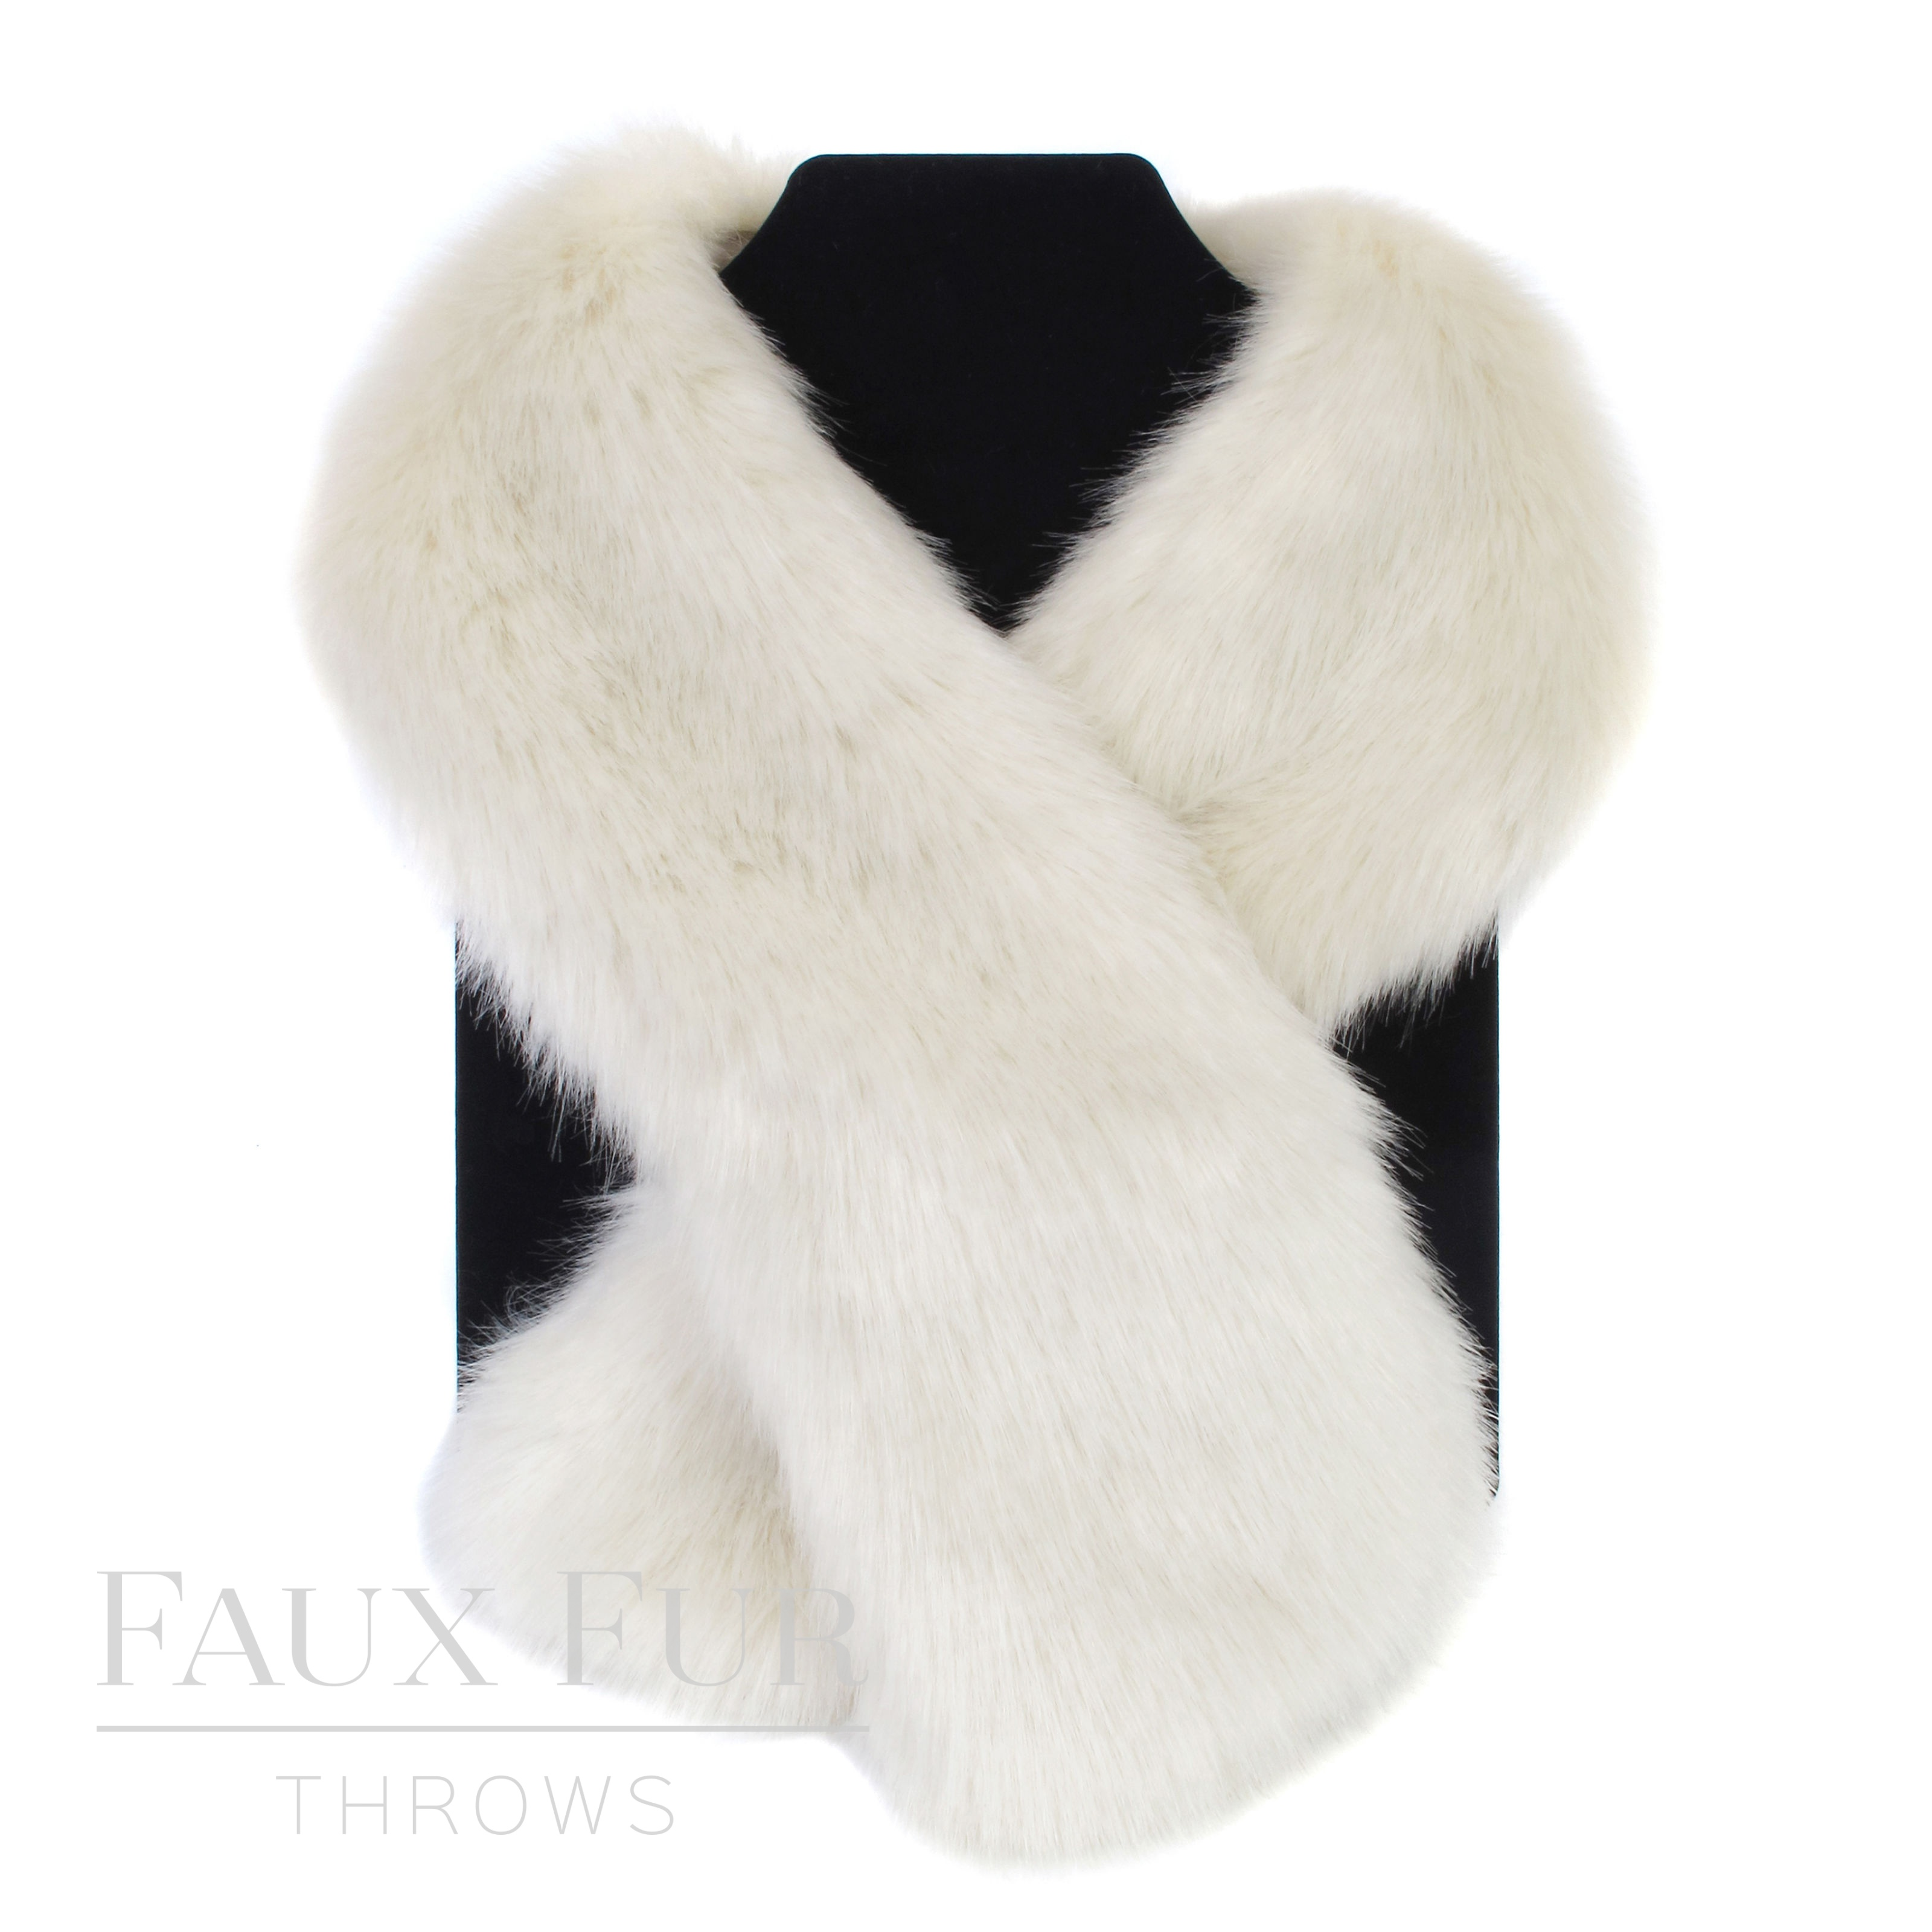 Faux Fur Scarf - Tippet Scarf - Ermine - White - Cream - Helen Moore